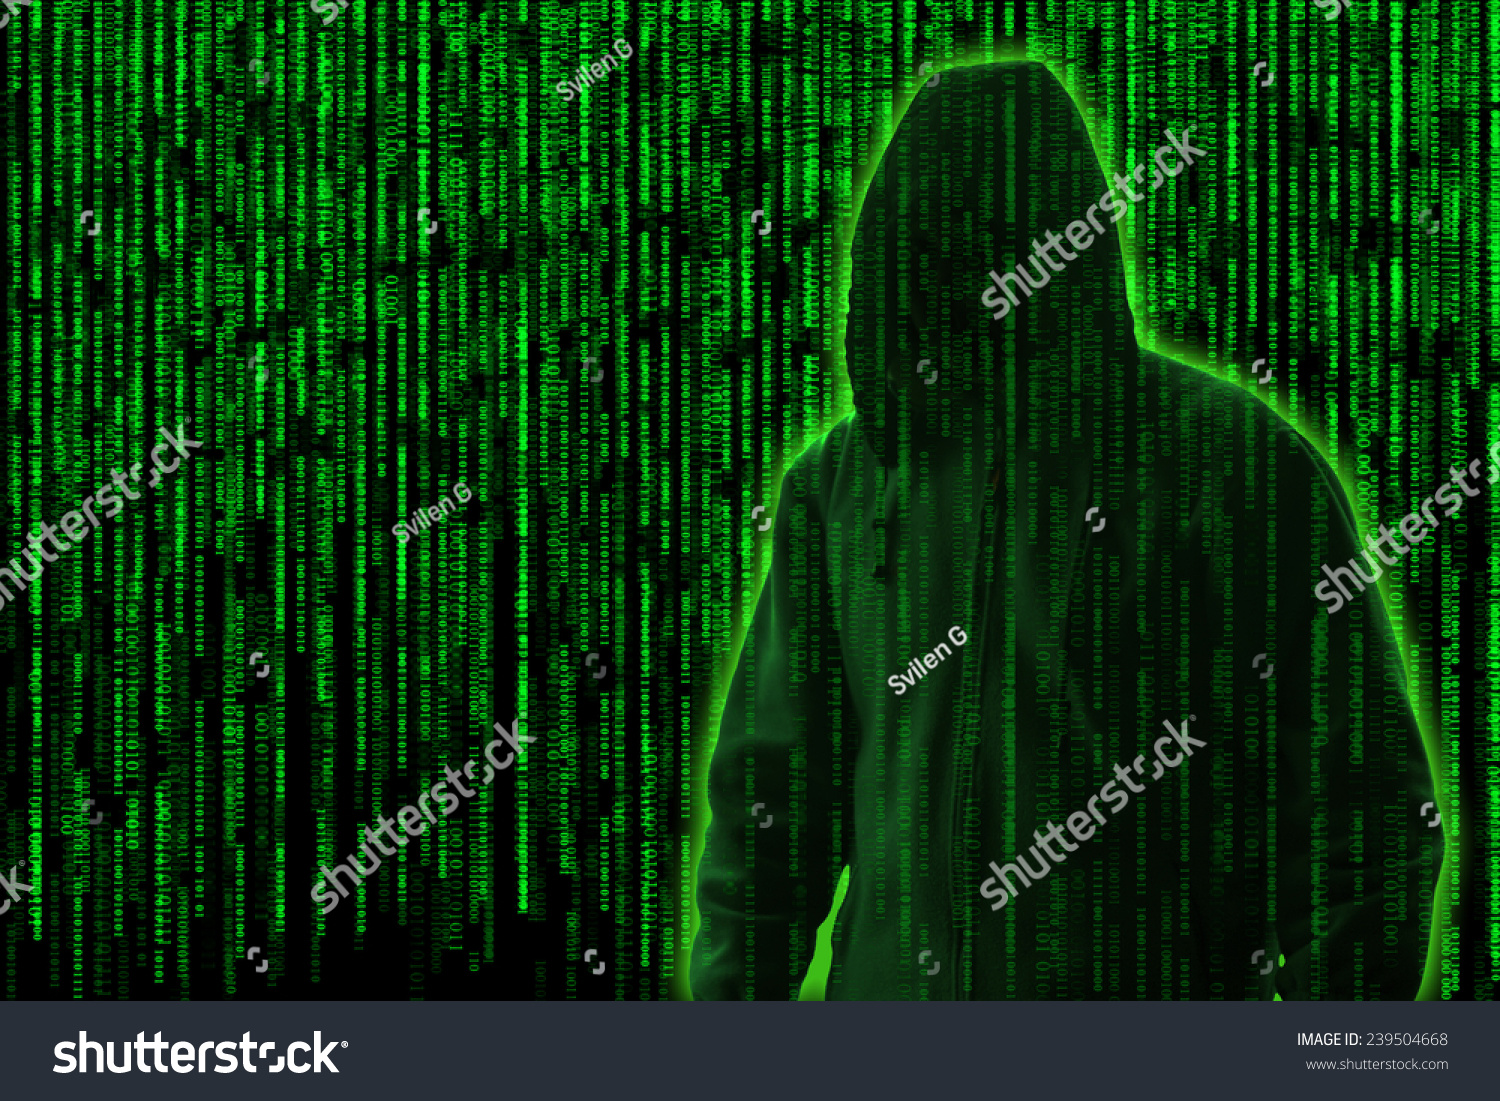 Conceptual Image Hacker On Matrix Background Stock Illustration Or Photo Of Circuit Board Skinned Human Close Up And Binary Code A Falling Green Computer Digits